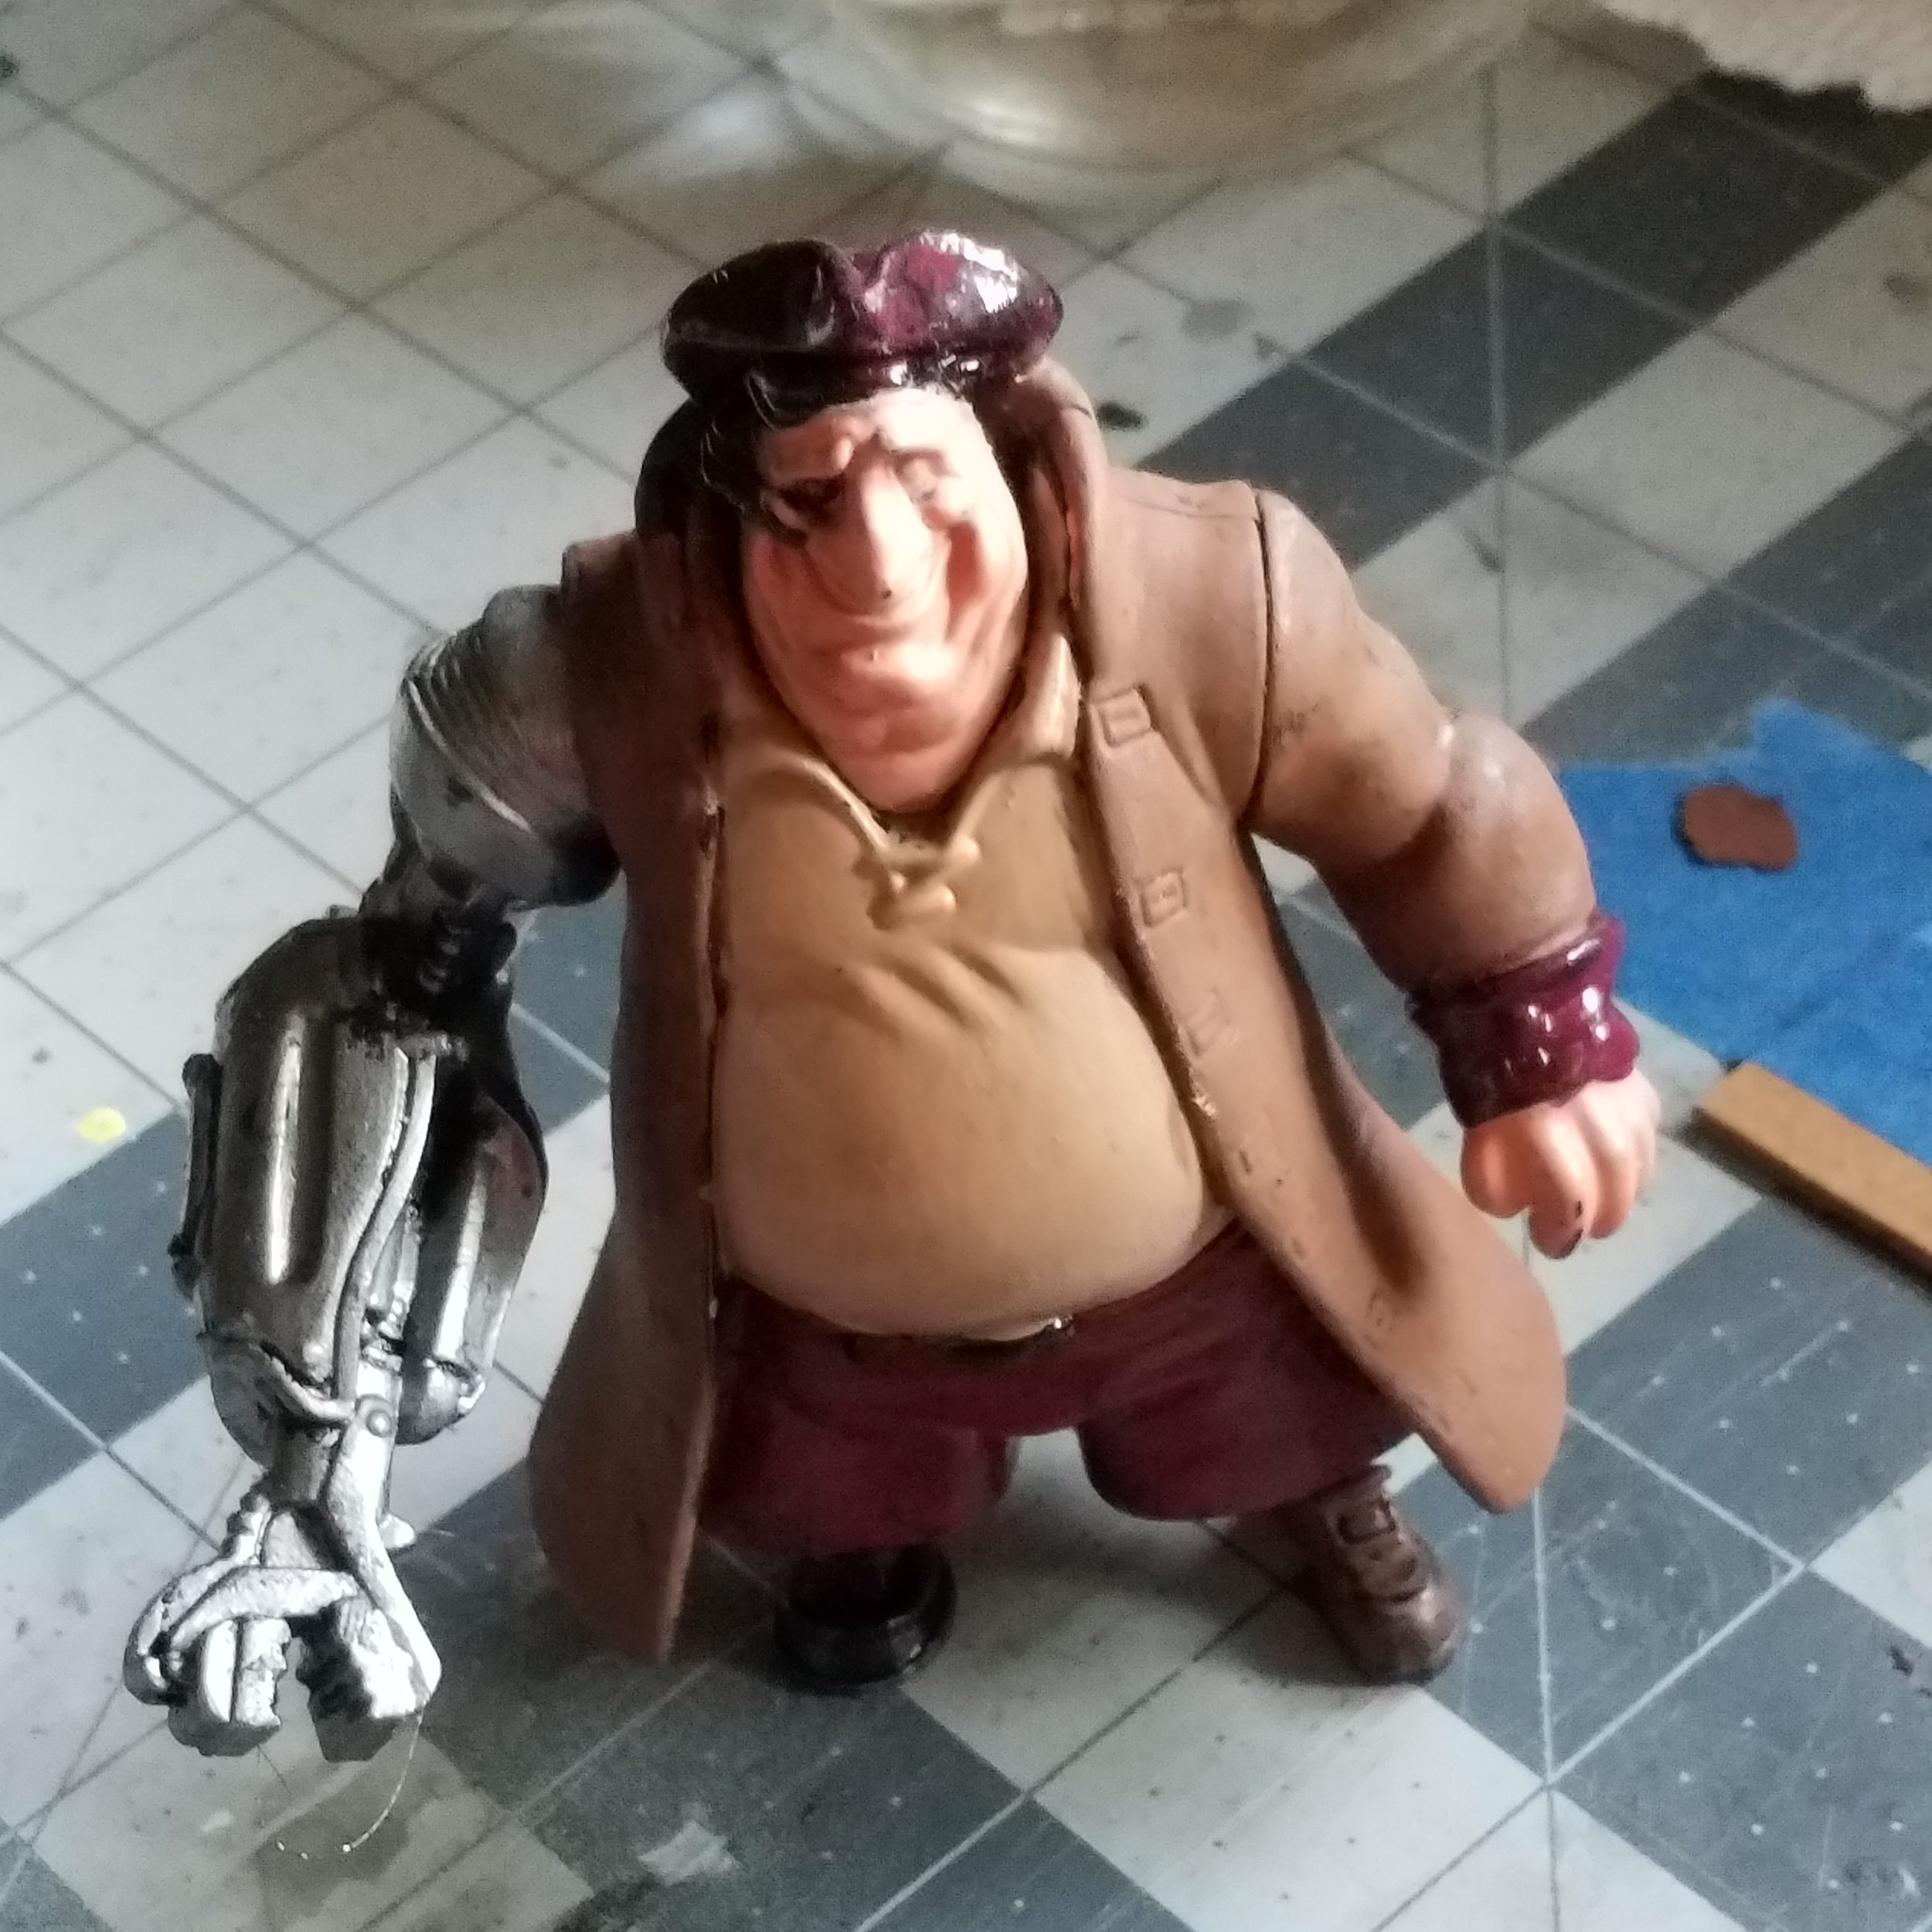 Space Pirate! I've had this figure from Treasure Planet for a while and decided to finally give it a repaint. Here we see a nearly completed base base coat.